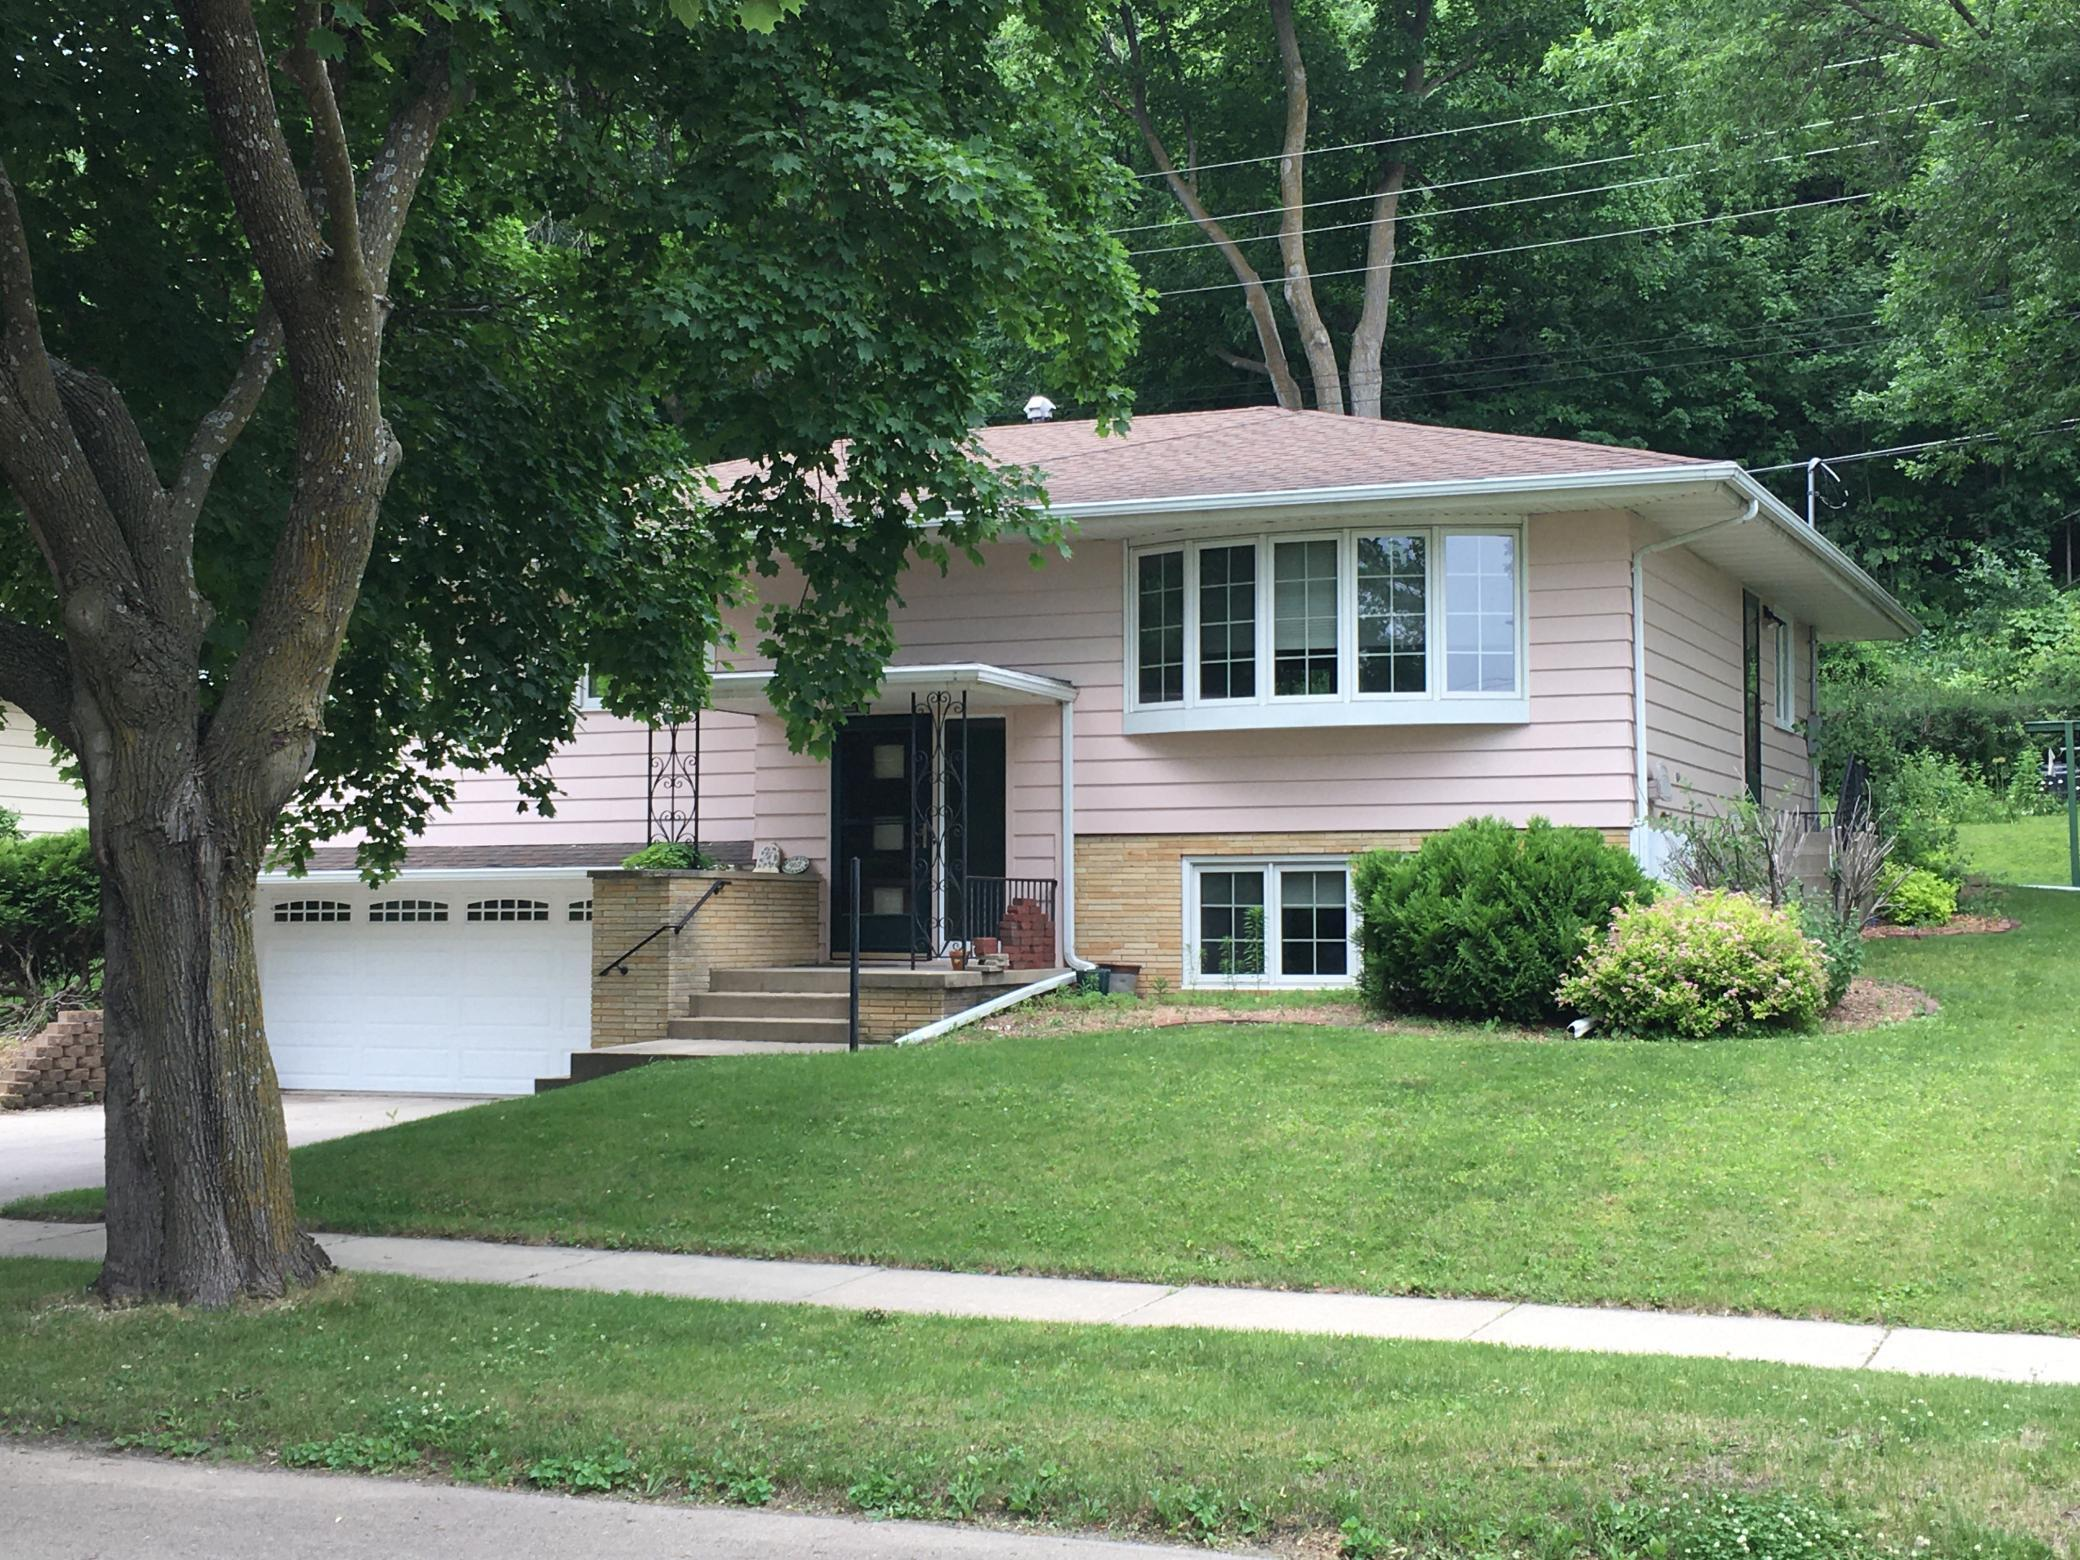 967 11 1/4 SW Property Photo - Rochester, MN real estate listing